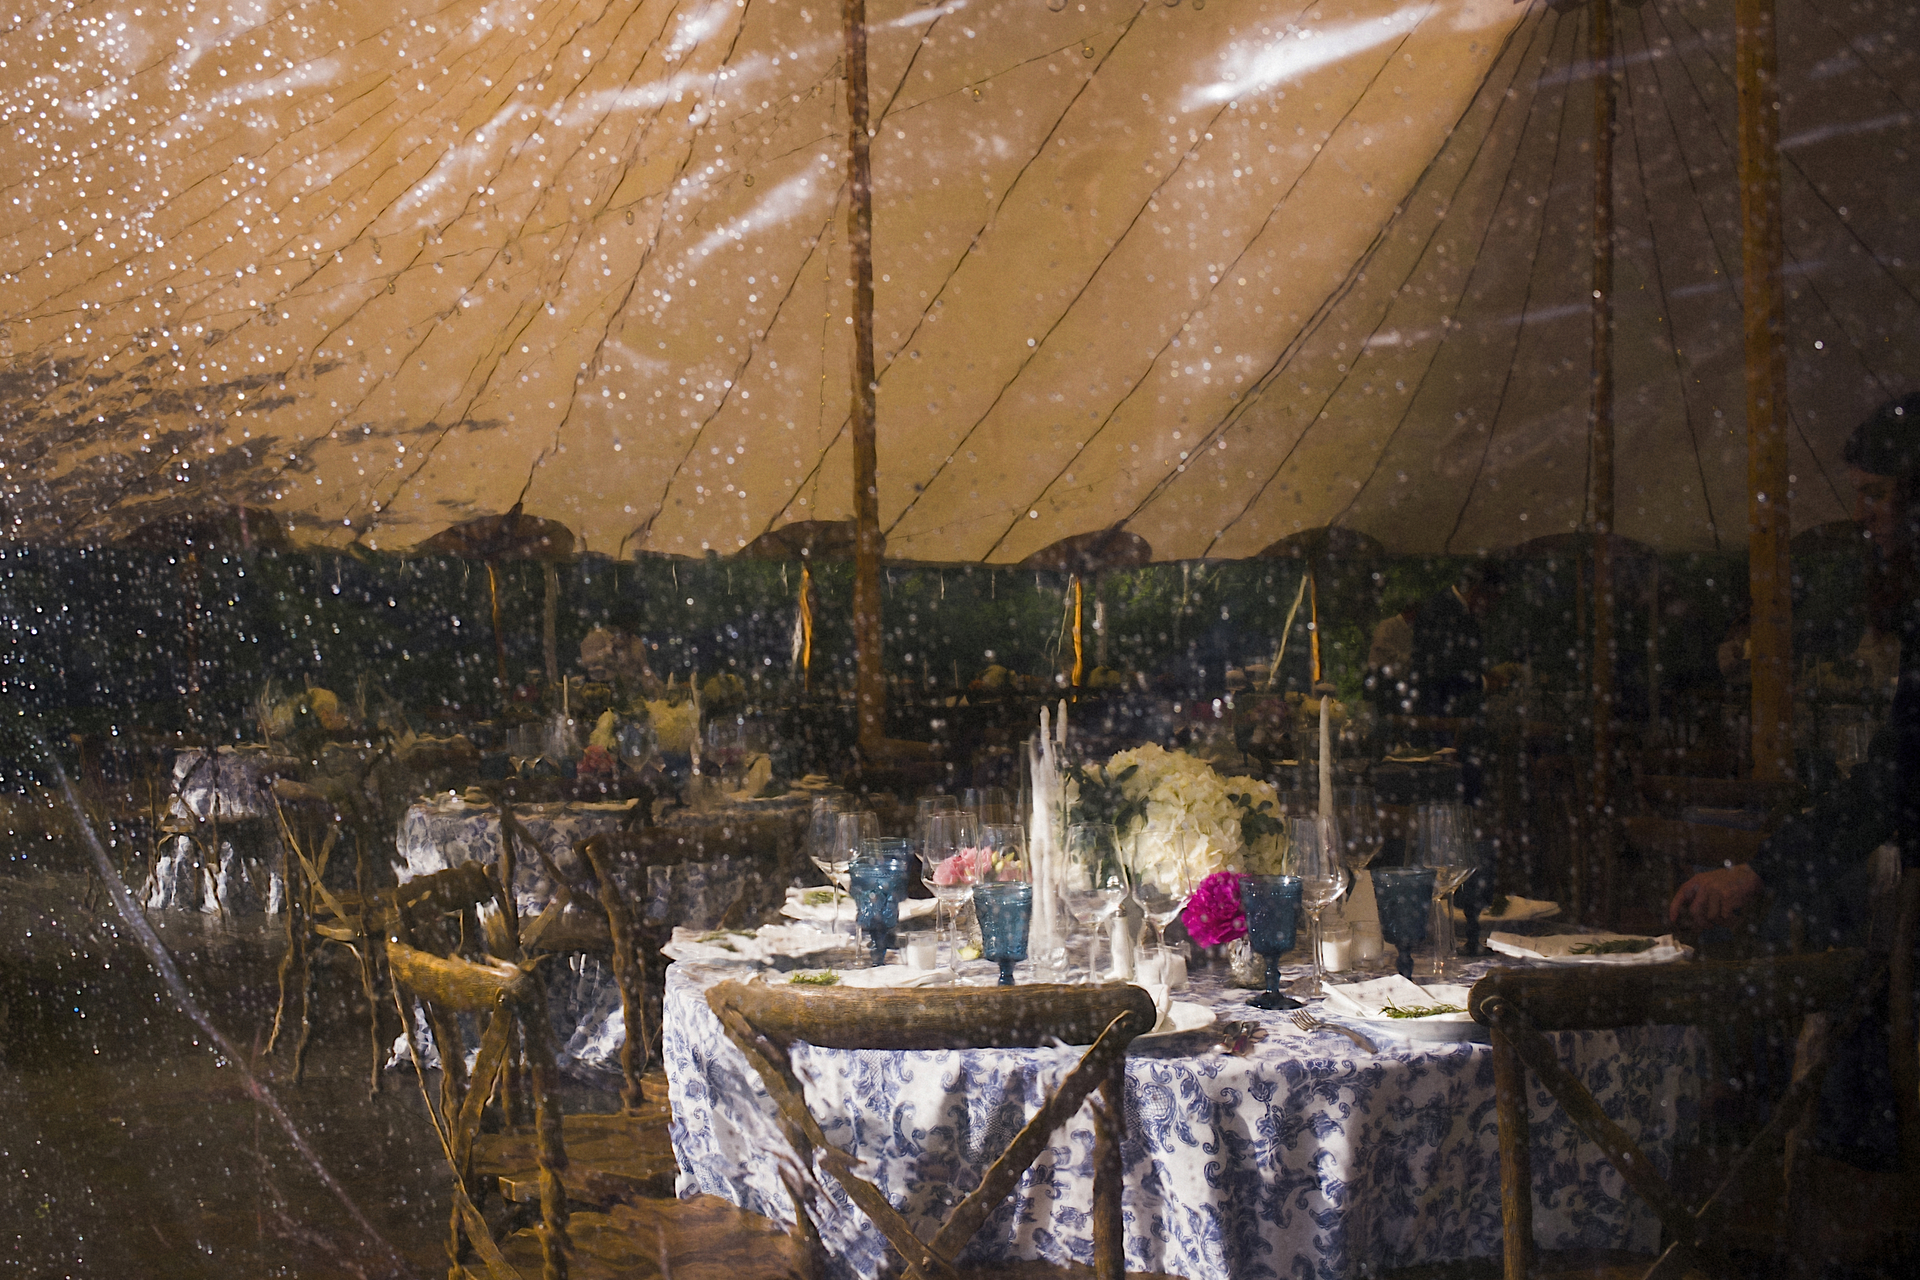 Rain on wedding reception tent sides - Bad weather wedding photography